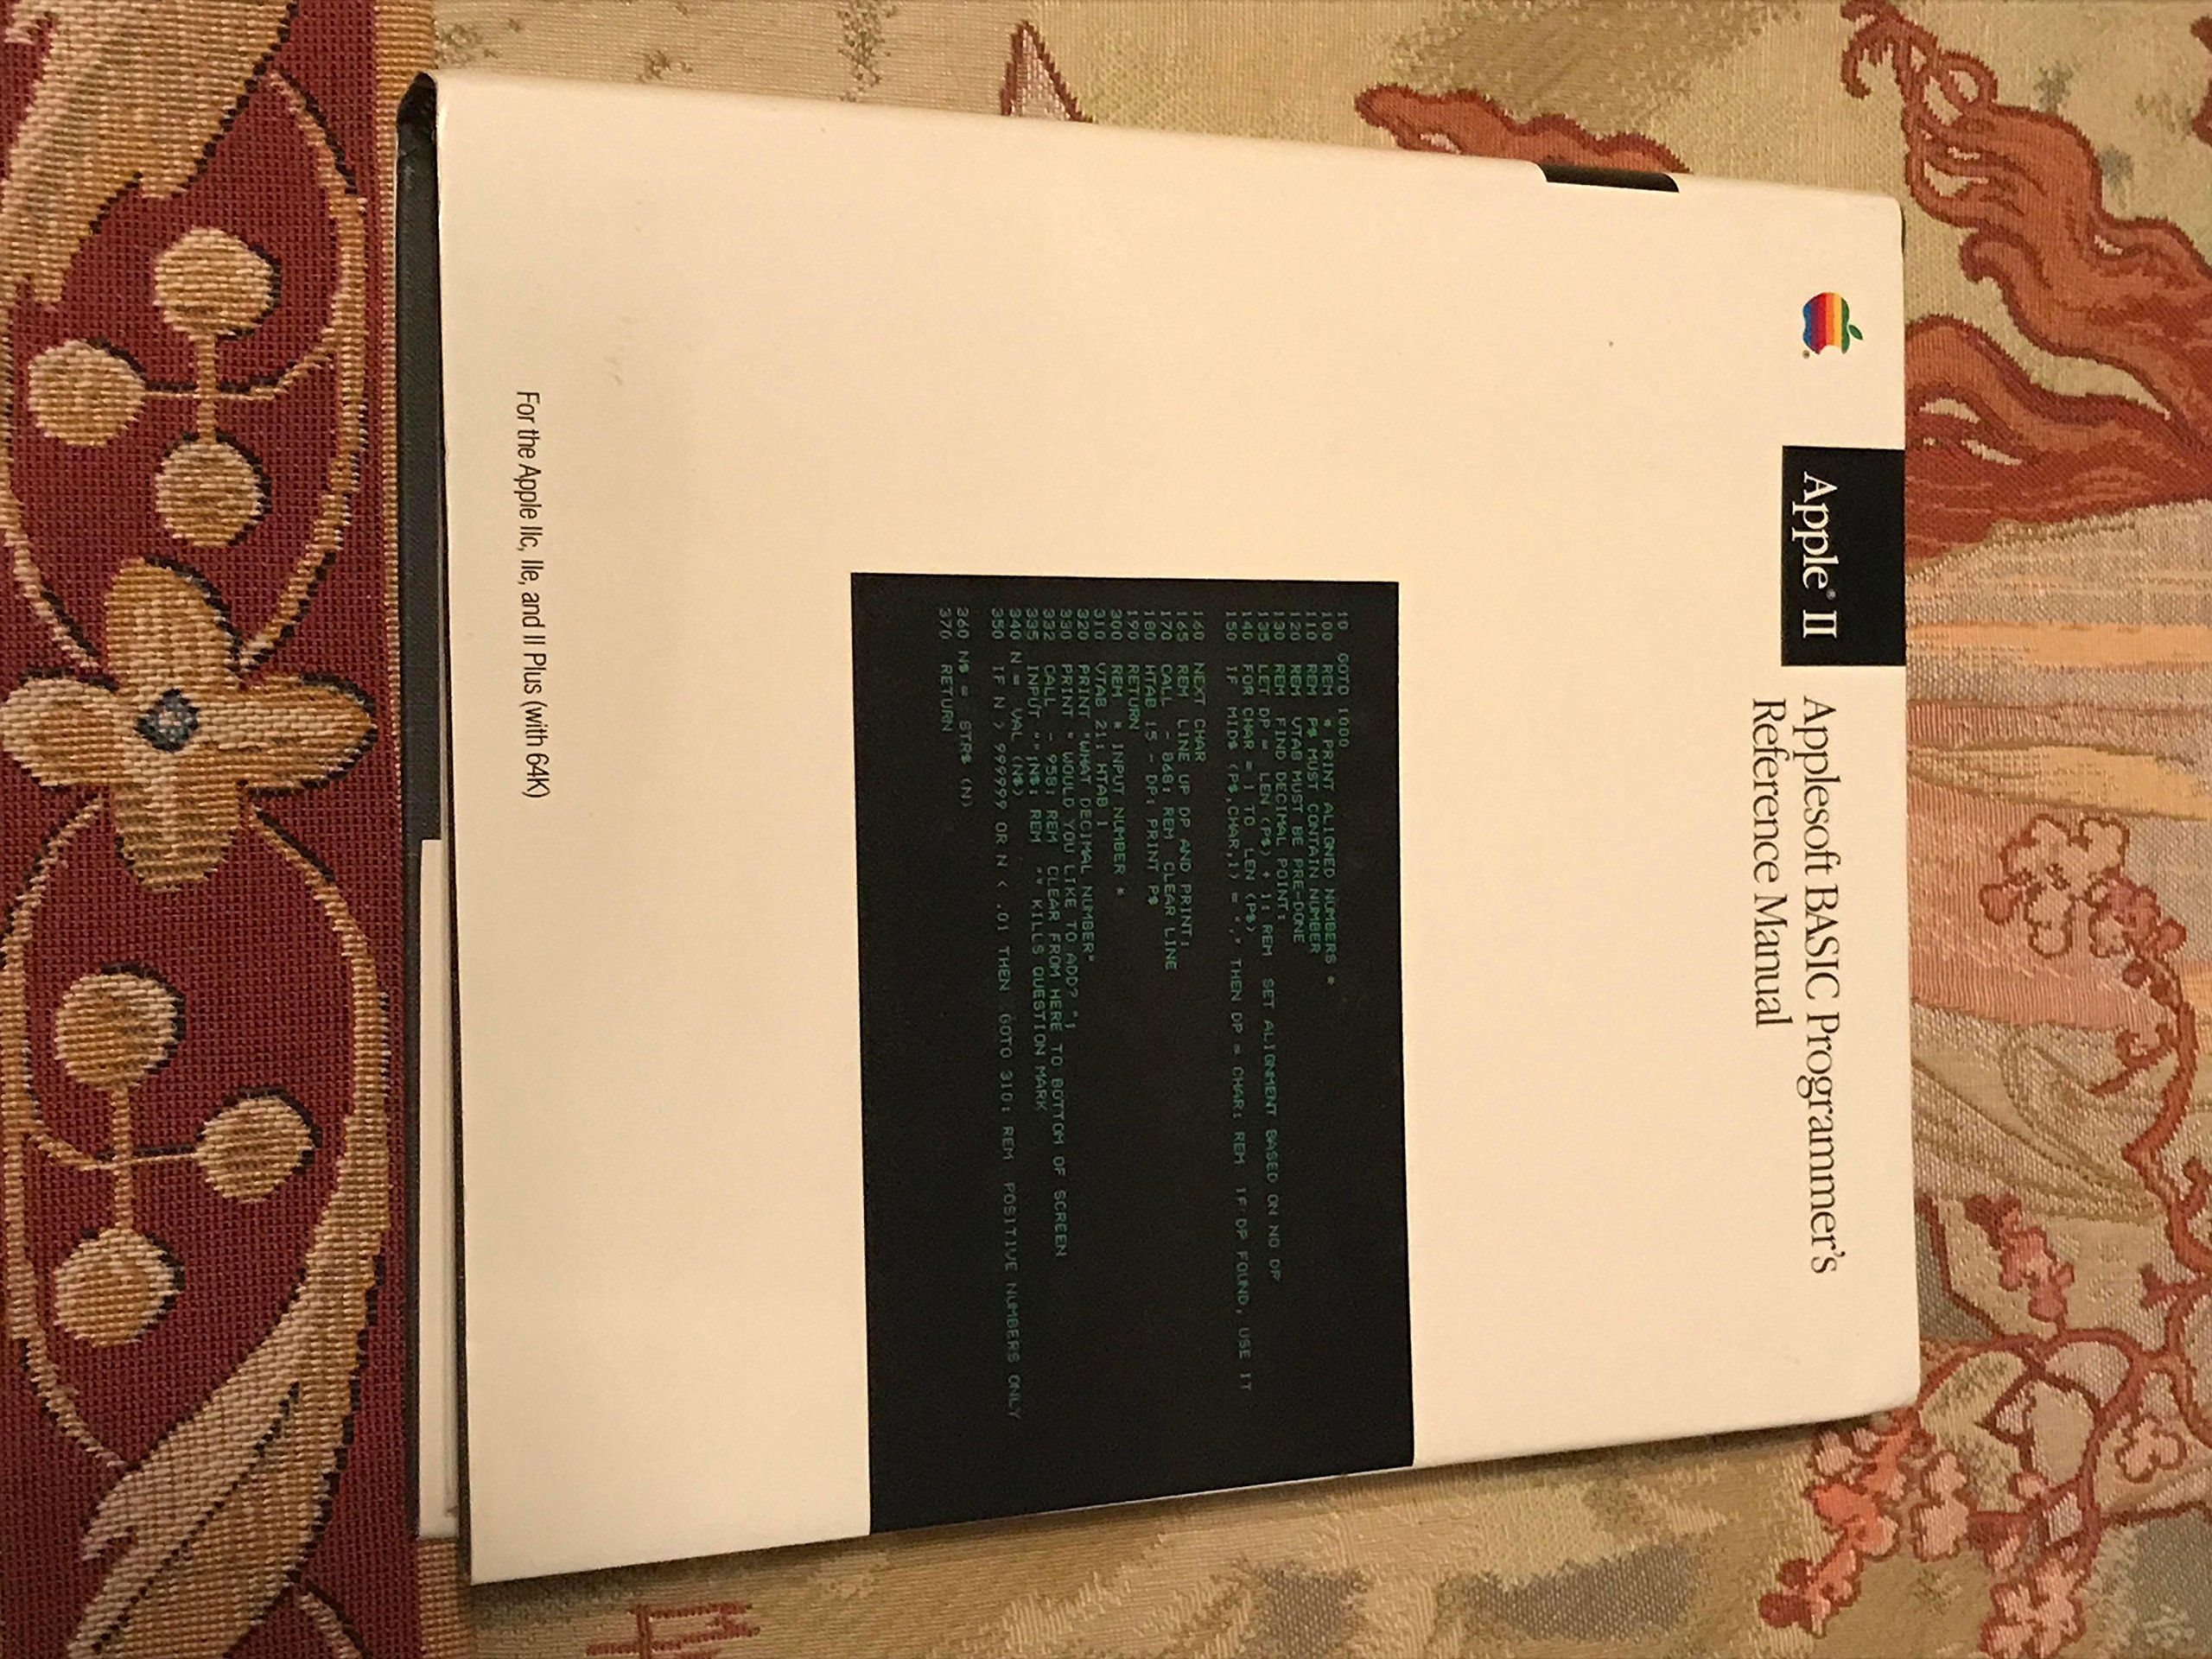 The Applesoft Basic Programmer's Reference Manual